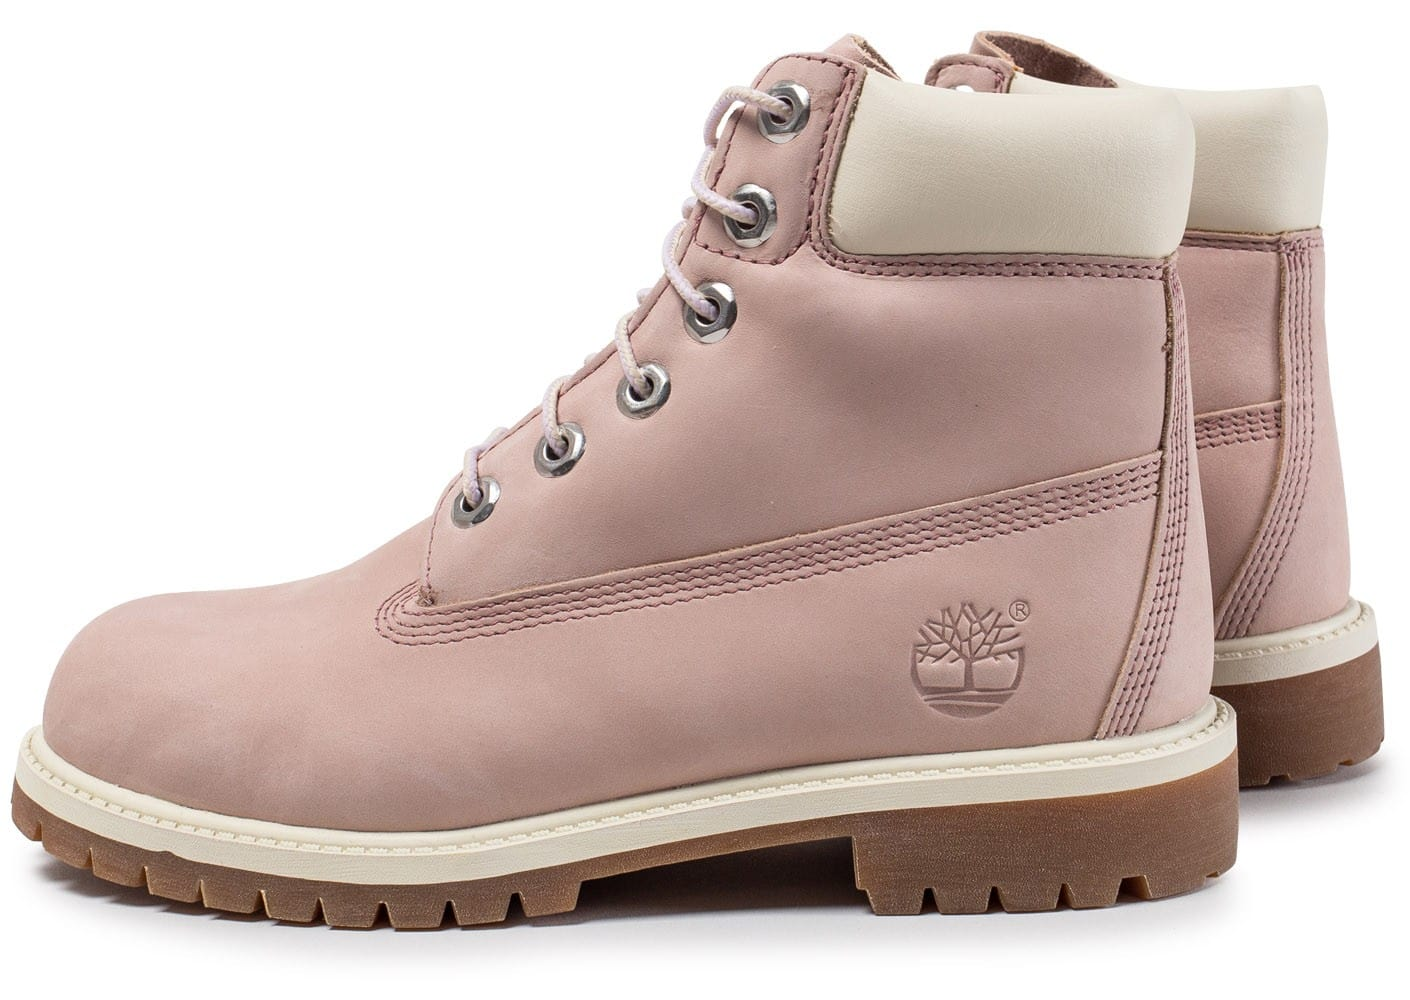 timberland 6 inch premium boots junior rose et blanche chaussures femme chausport. Black Bedroom Furniture Sets. Home Design Ideas